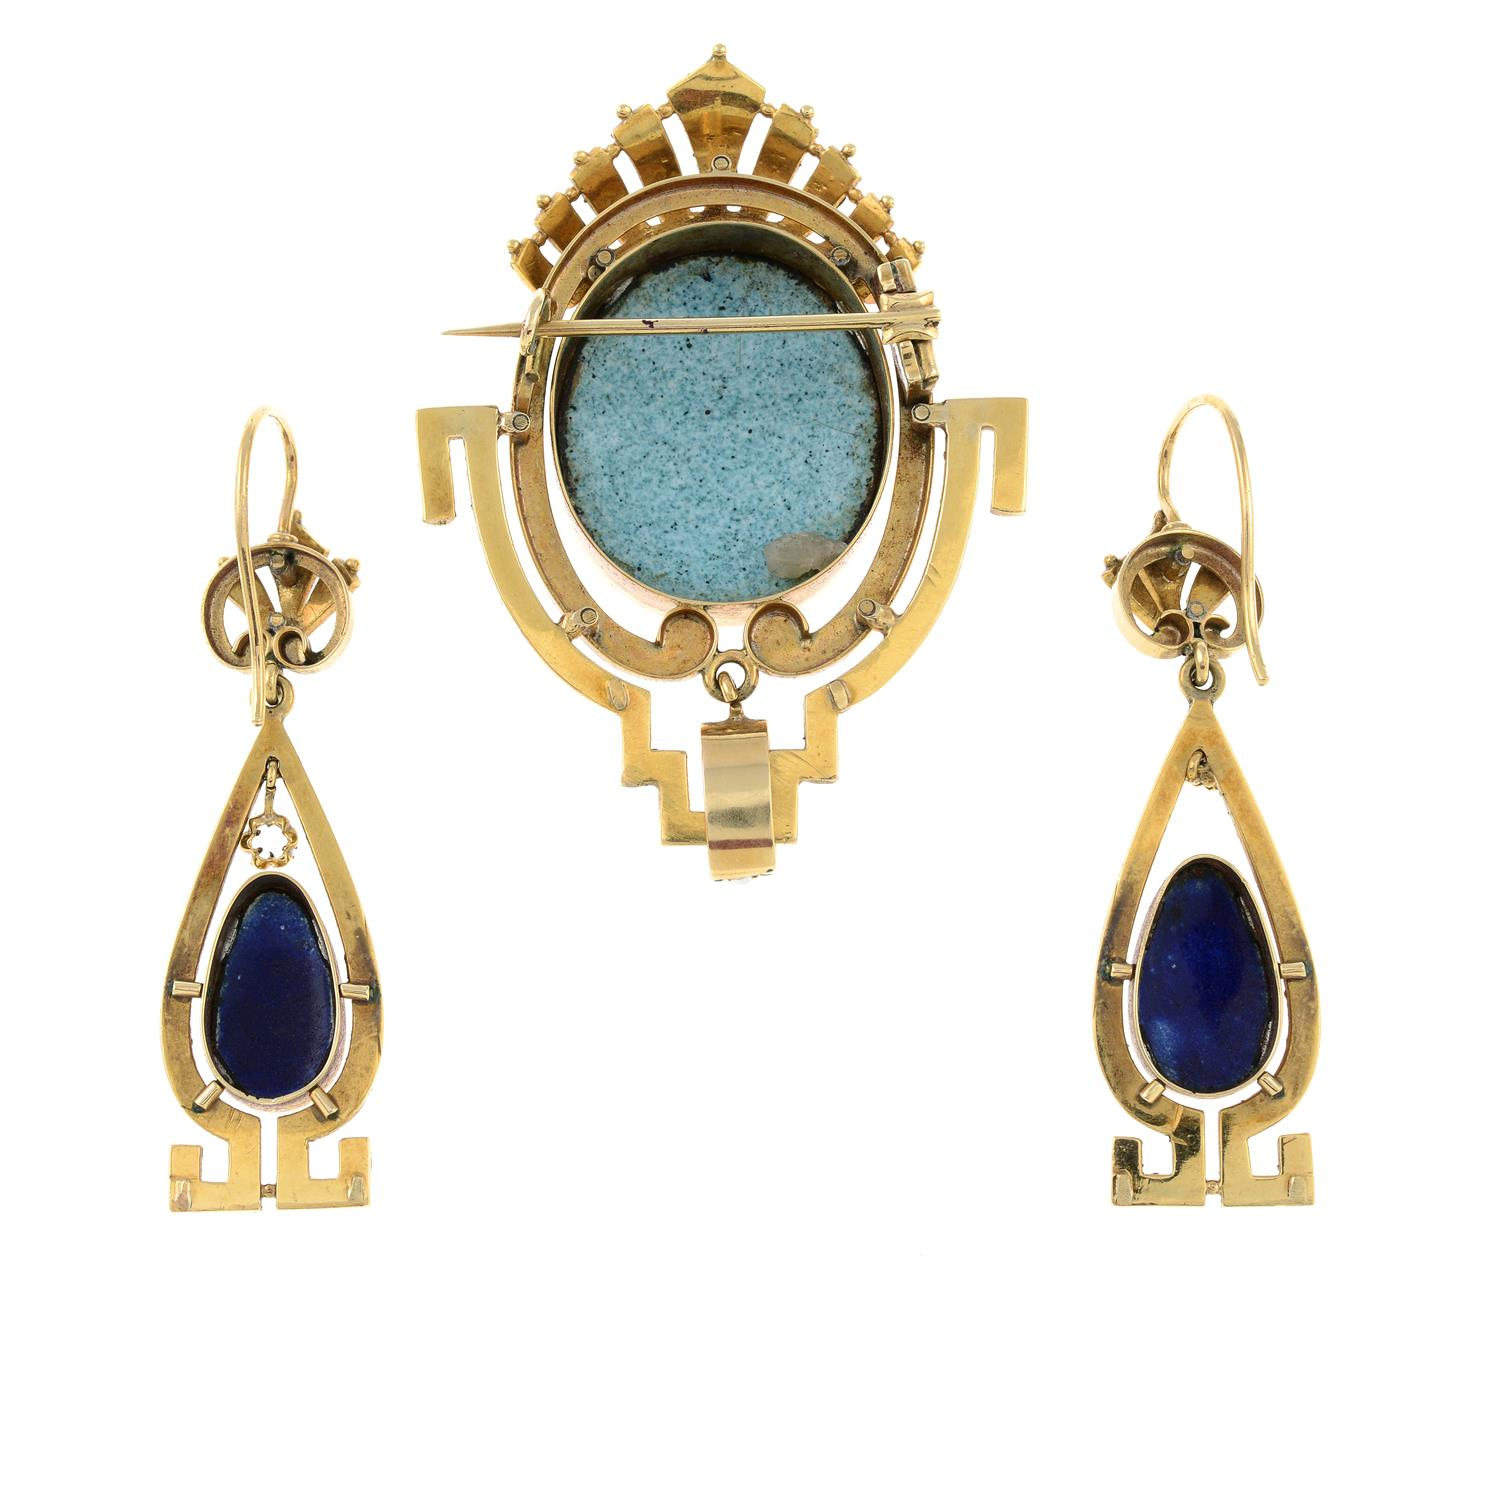 A late 19th century gold, enamel portrait and split pearl brooch, with matching earrings. - Image 3 of 6